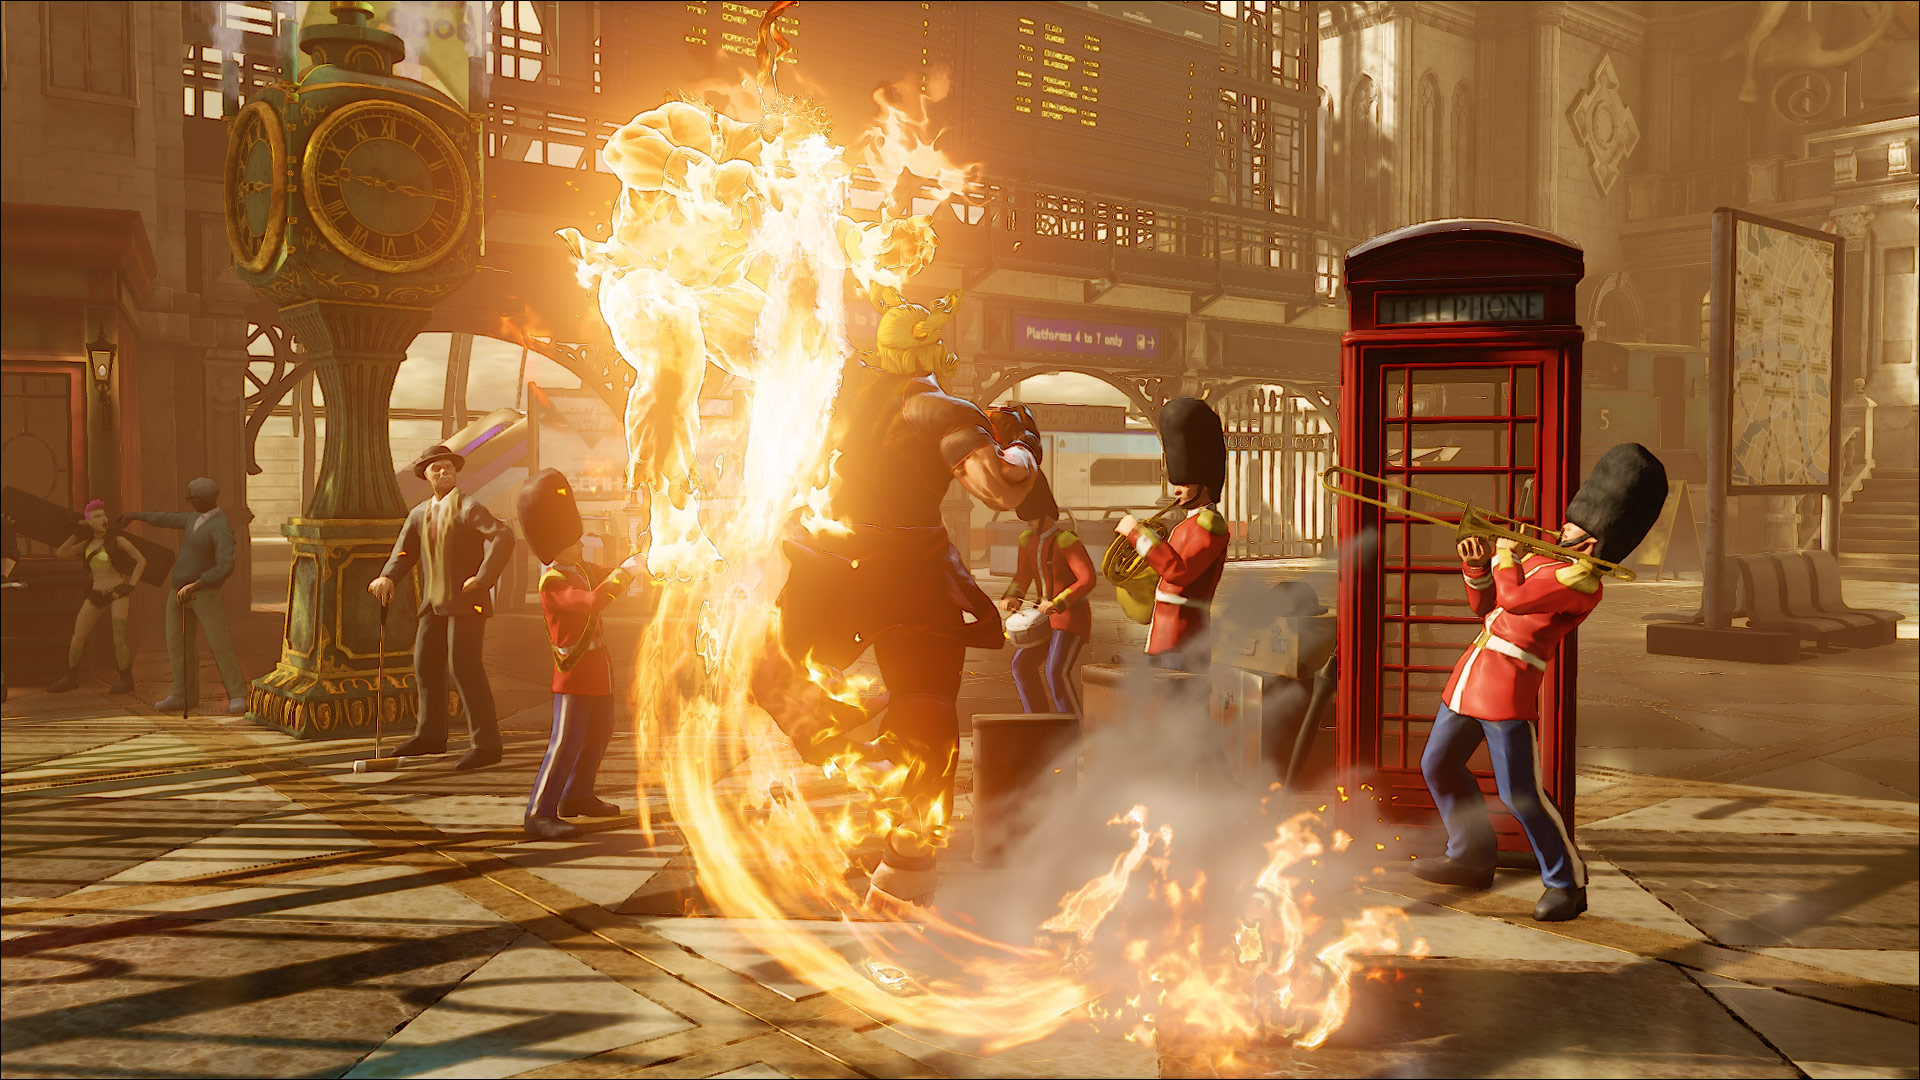 Ken Street Fighter 5 SDCC 2015 reveal 7 out of 13 image gallery